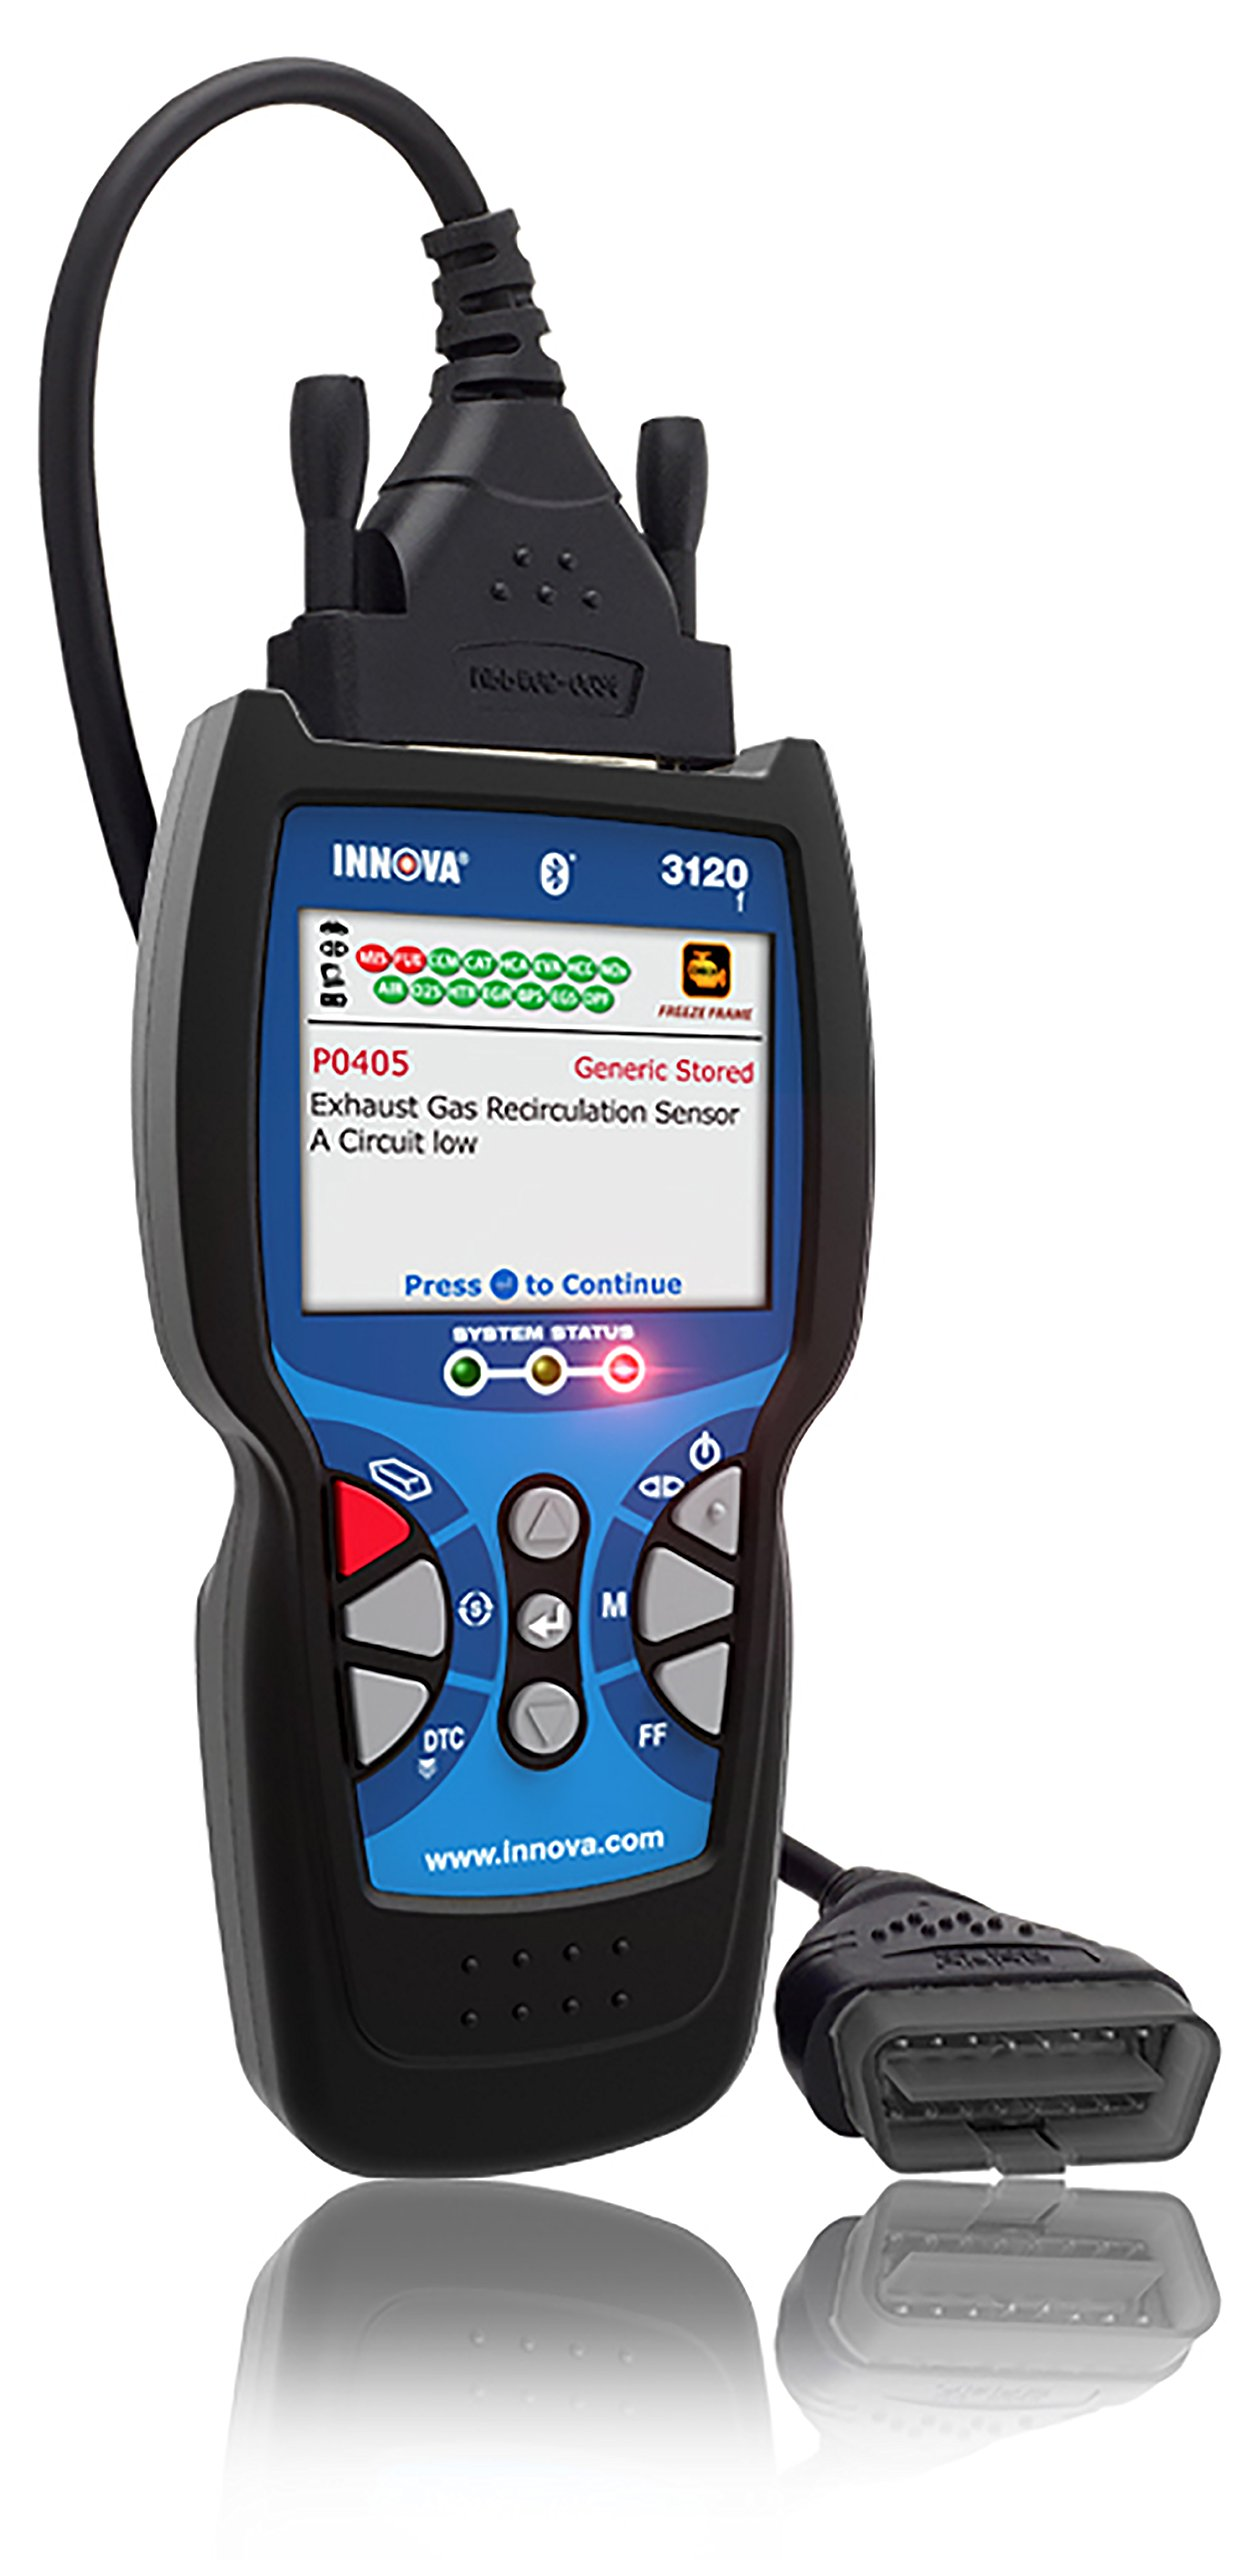 Innova 3120f Code Reader / Scan Tool with ABS and Bluetooth for OBD2 Vehicles with OBD1 Coverage